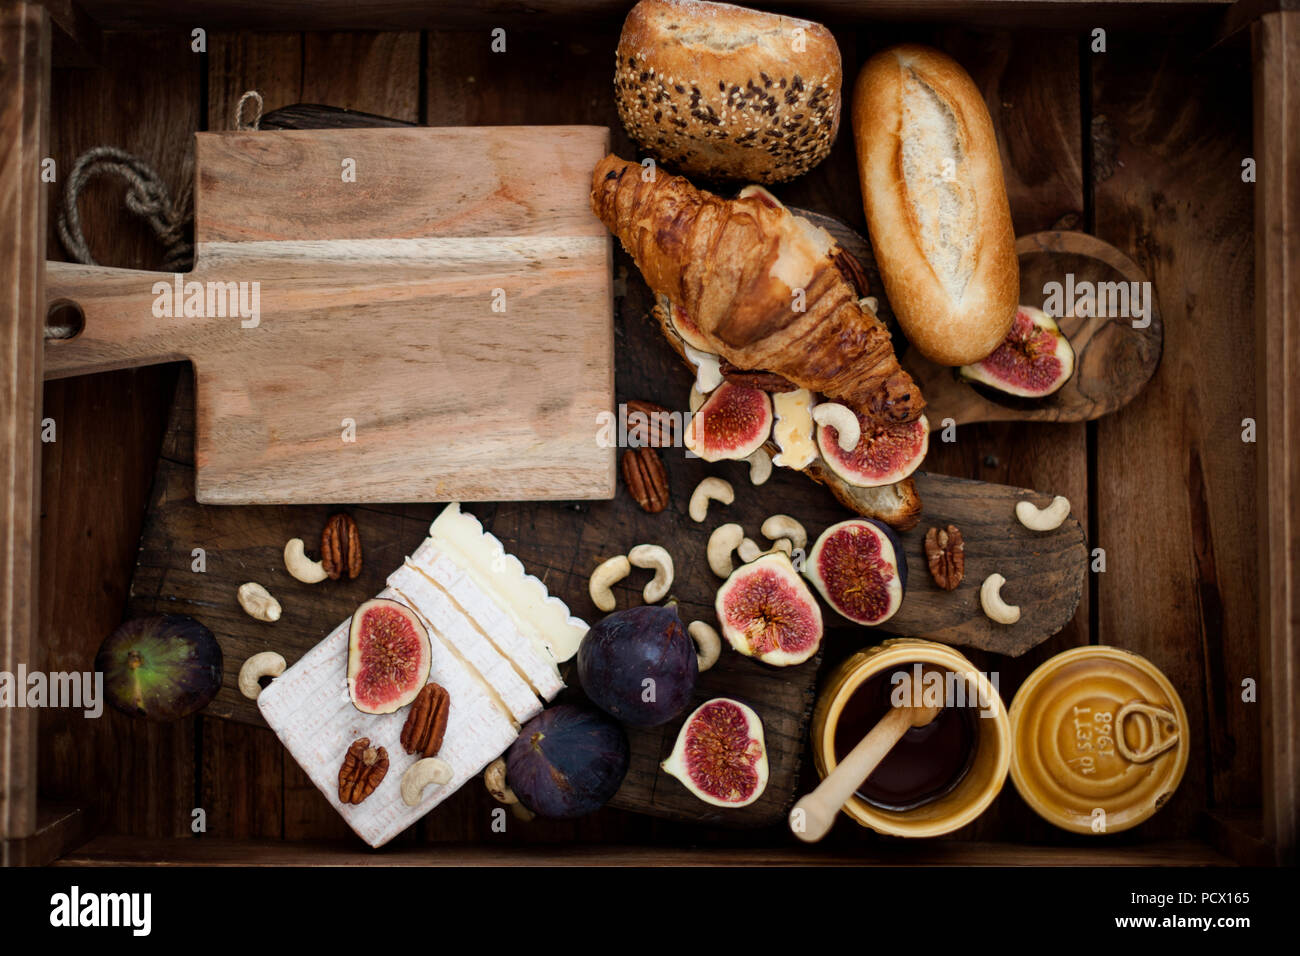 breakfast. a croissant with figs and honey. brie cheese and nuts. wooden board. Vintage background. brown photo. family breakfast. homemade baking - Stock Image